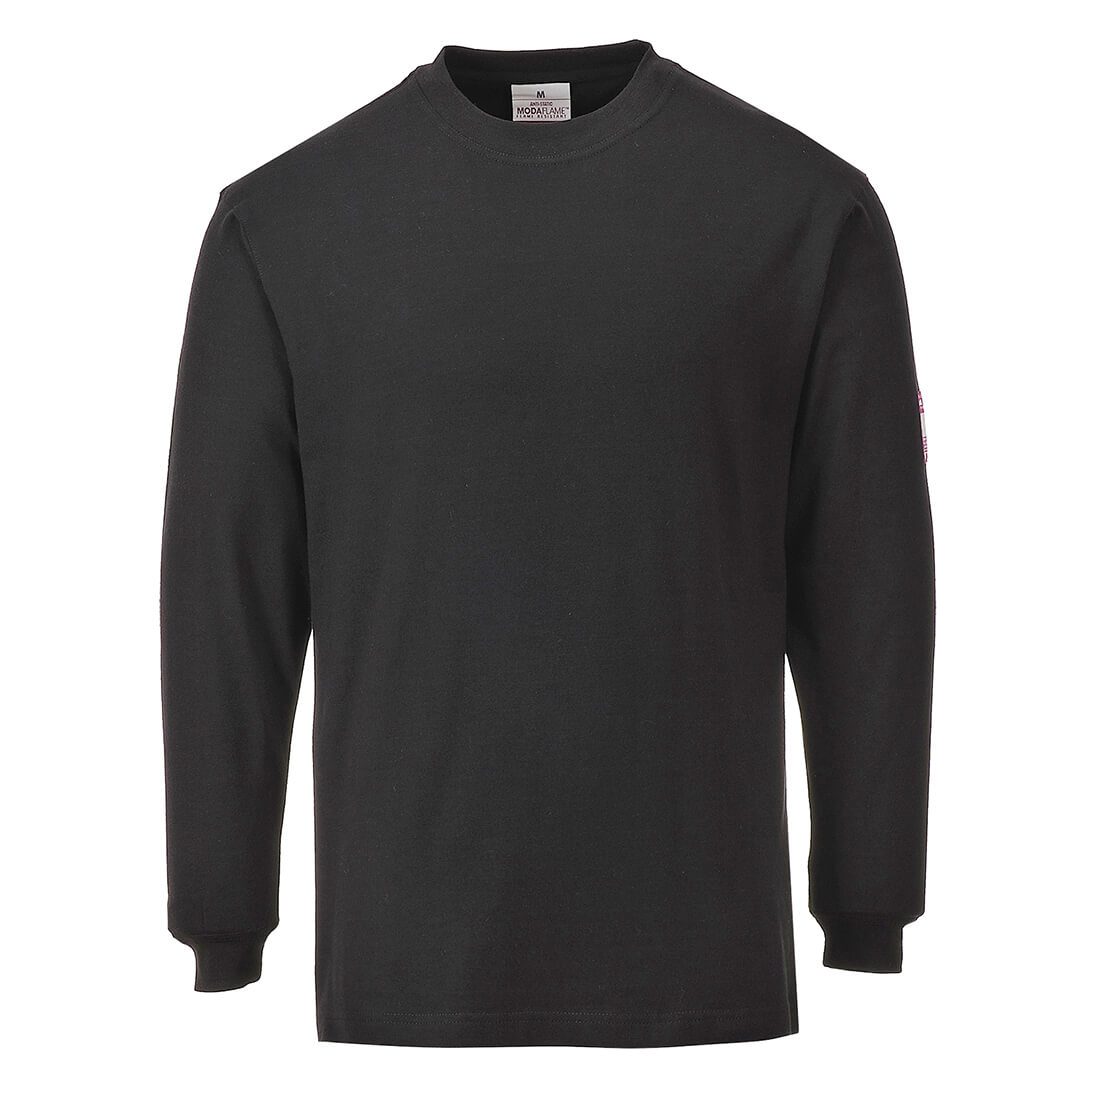 Image of Modaflame Mens Flame Resistant Antistatic T-Shirt Black 2XL